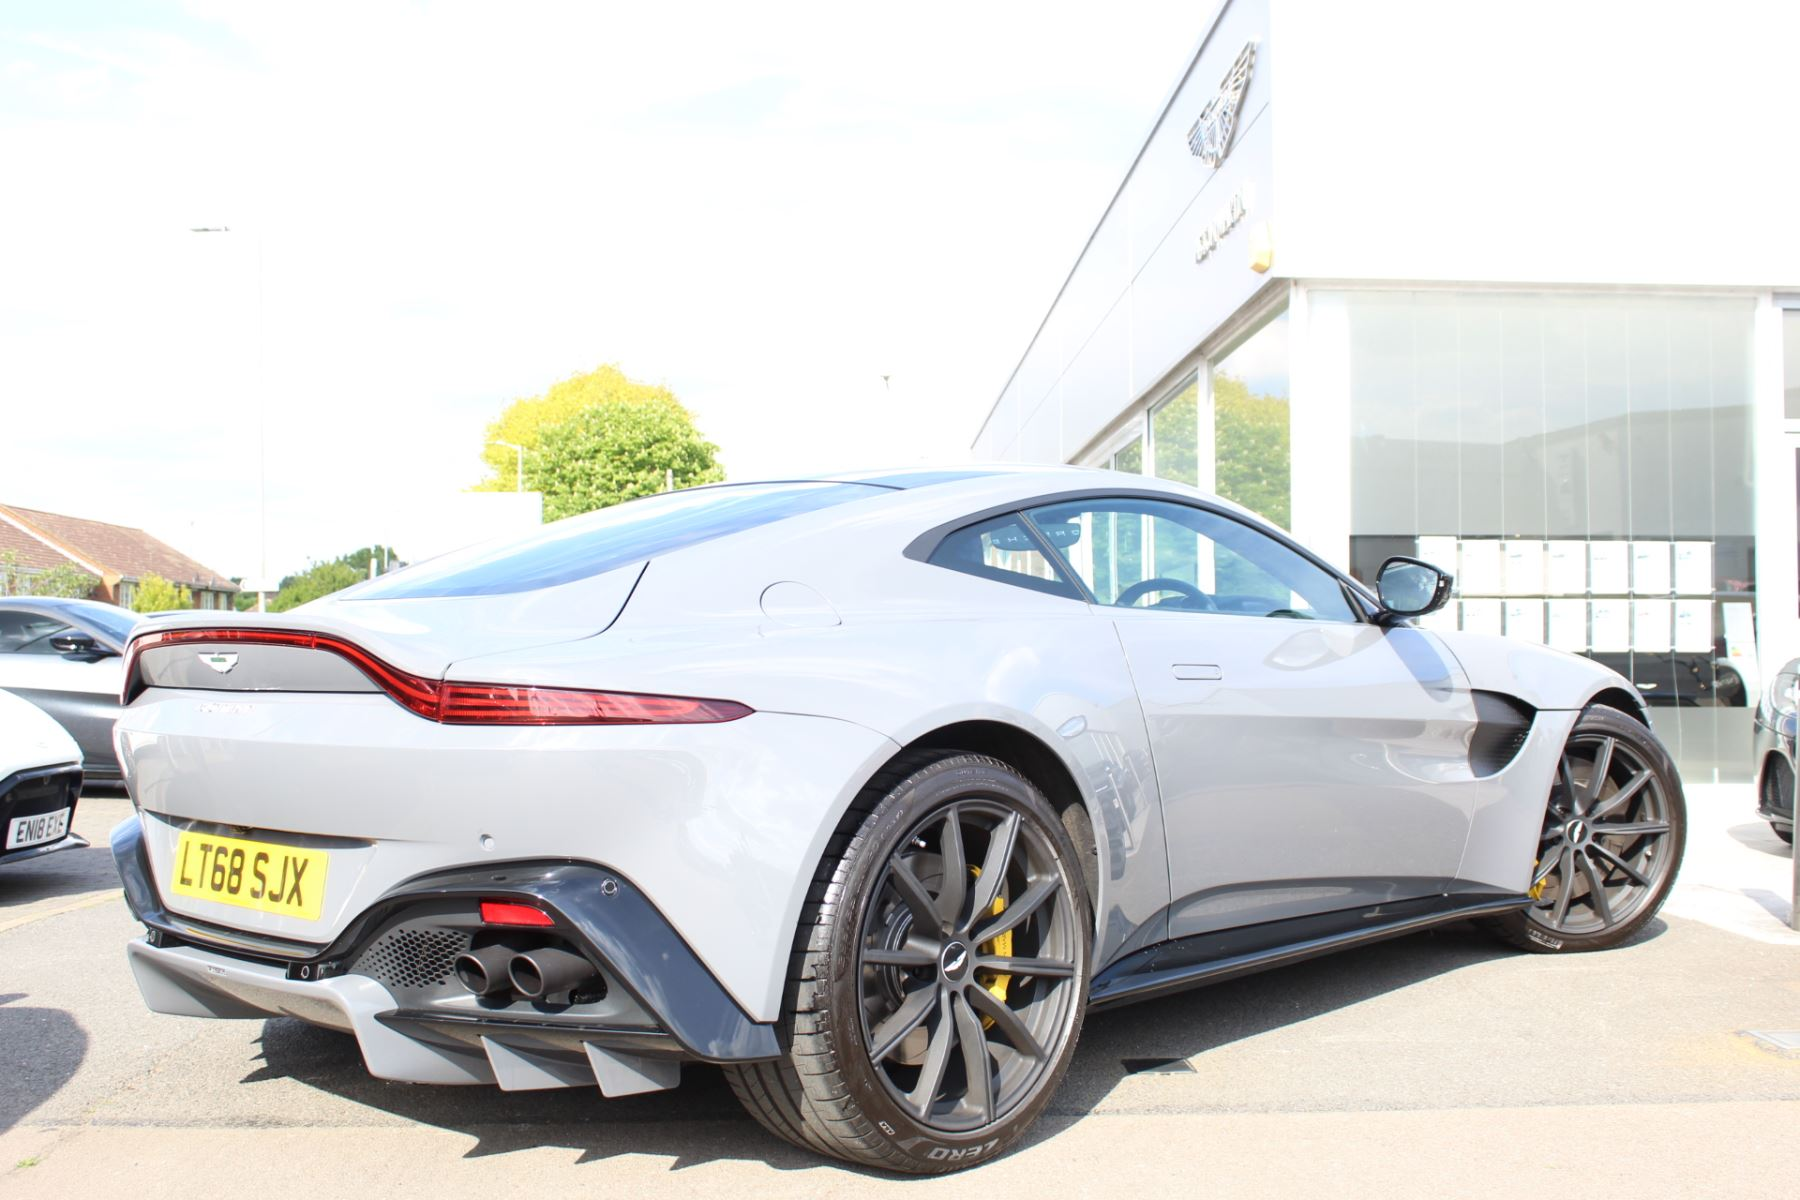 Aston Martin V8 Vantage Coupe 2dr ZF 8 Speed image 18